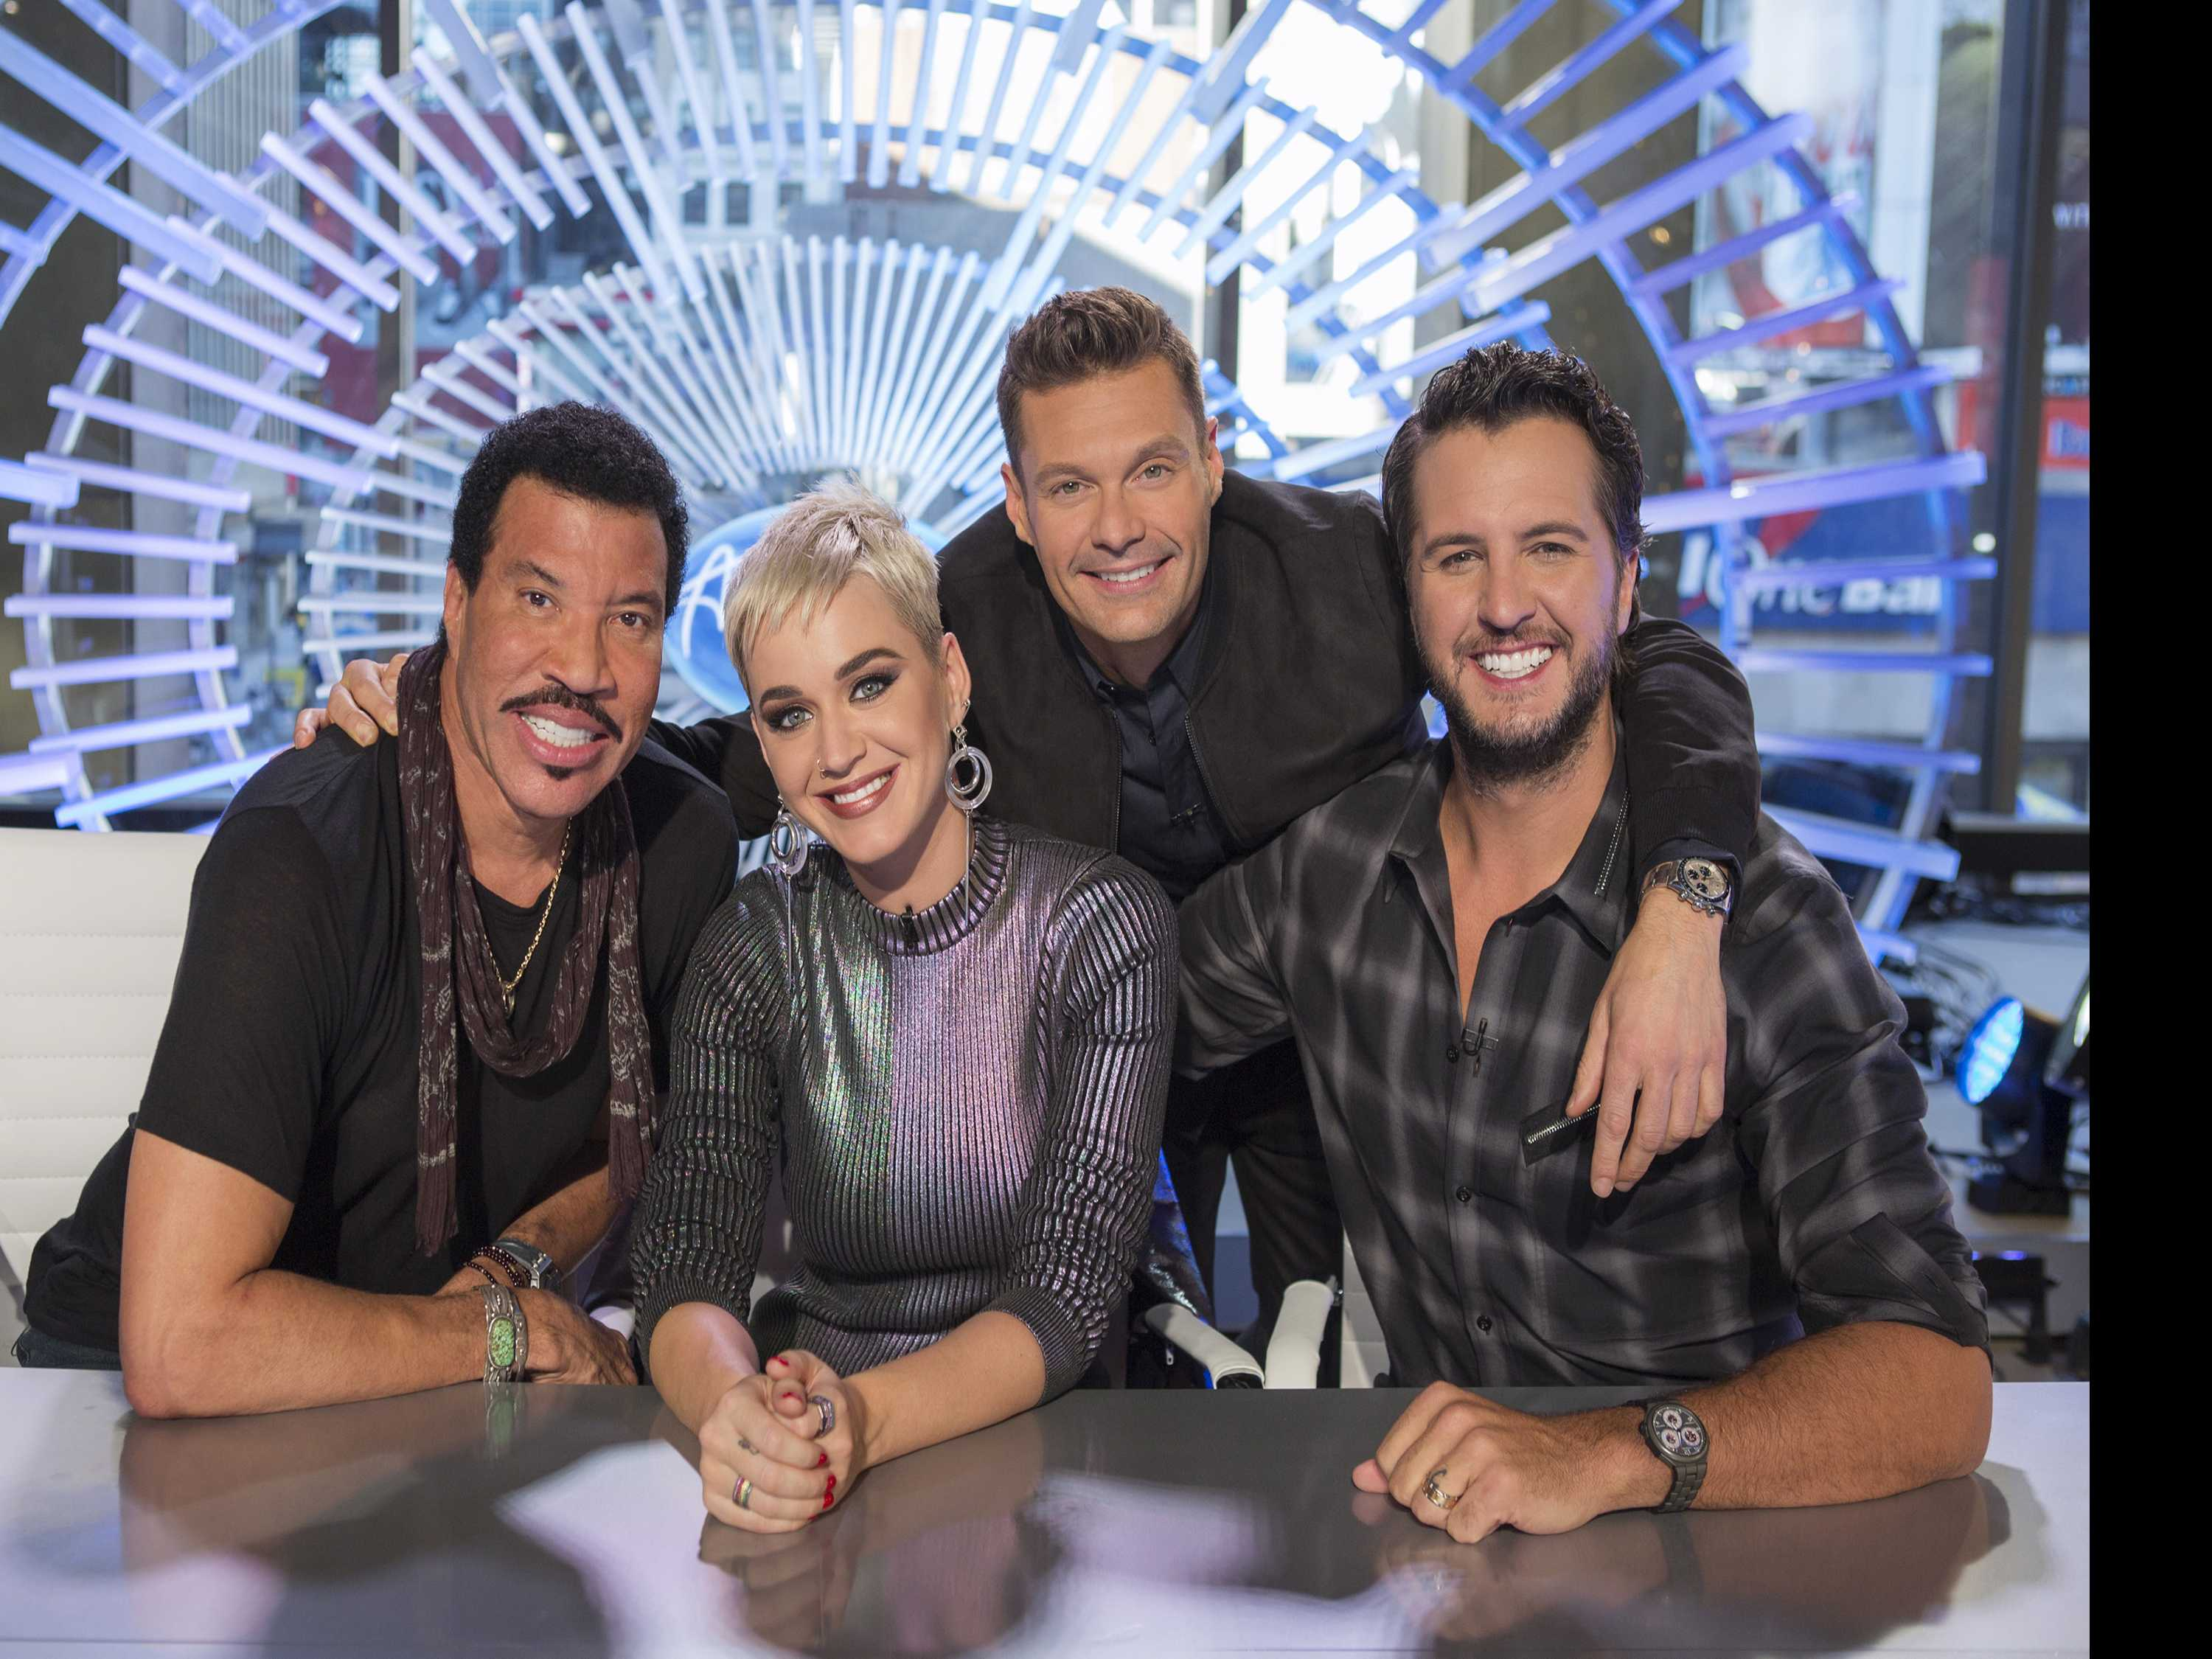 One-Time Star 'American Idol' Tries for a Second Act on ABC